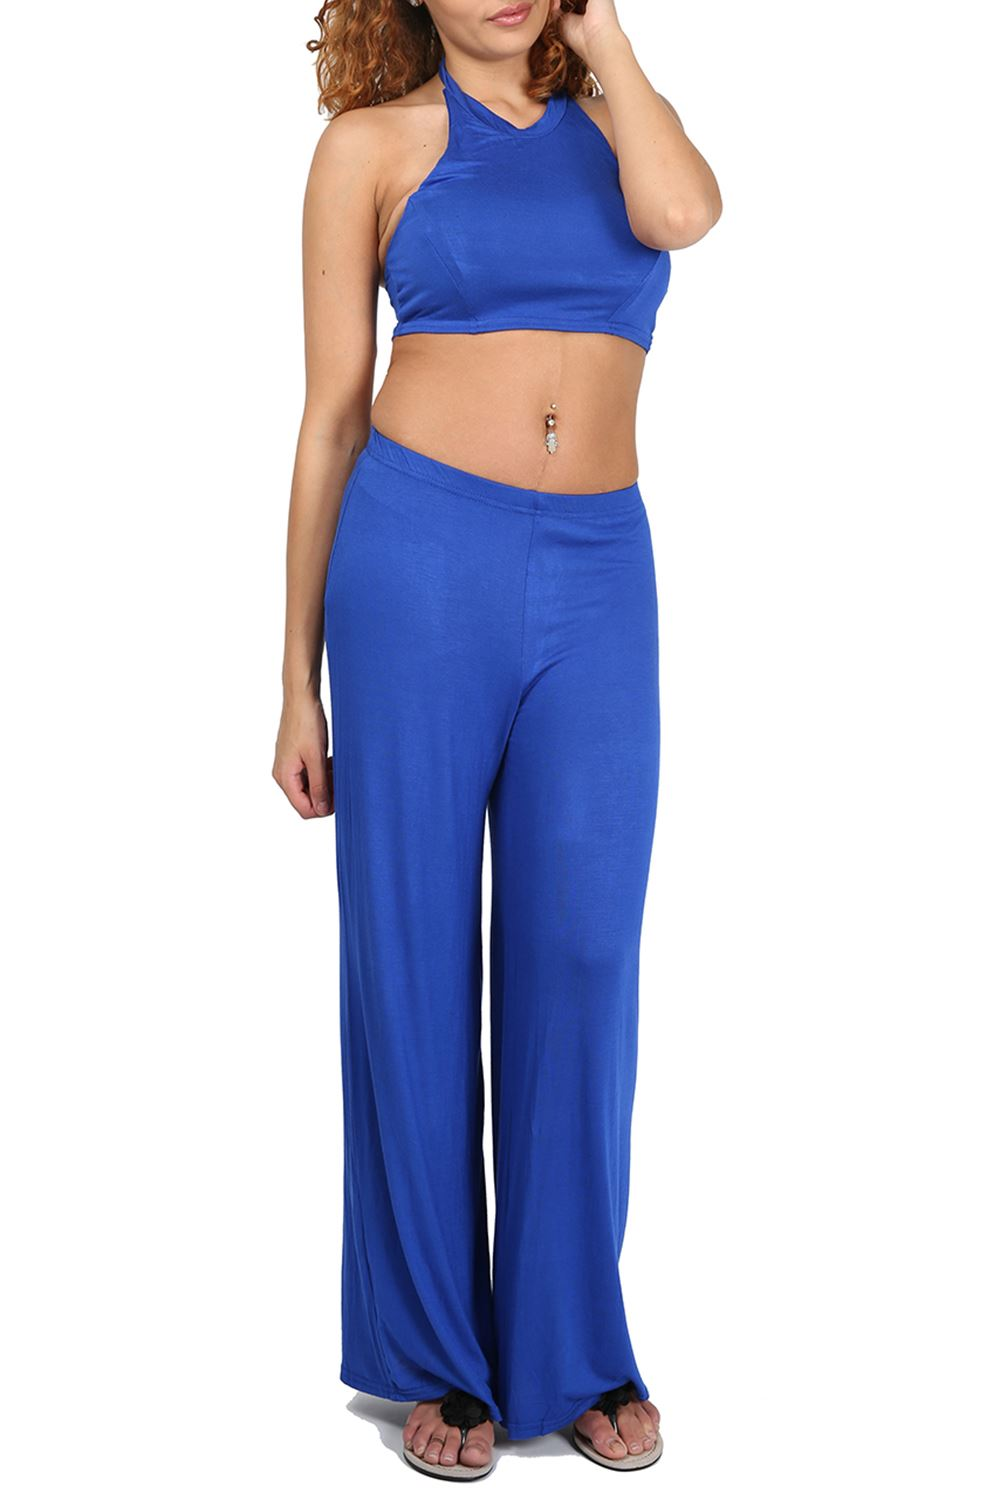 f7b3e5c59f Womens Co Ord Set Ladies Halter Neck Crop Top Wide Loose Palazzo Pants 2  Piece